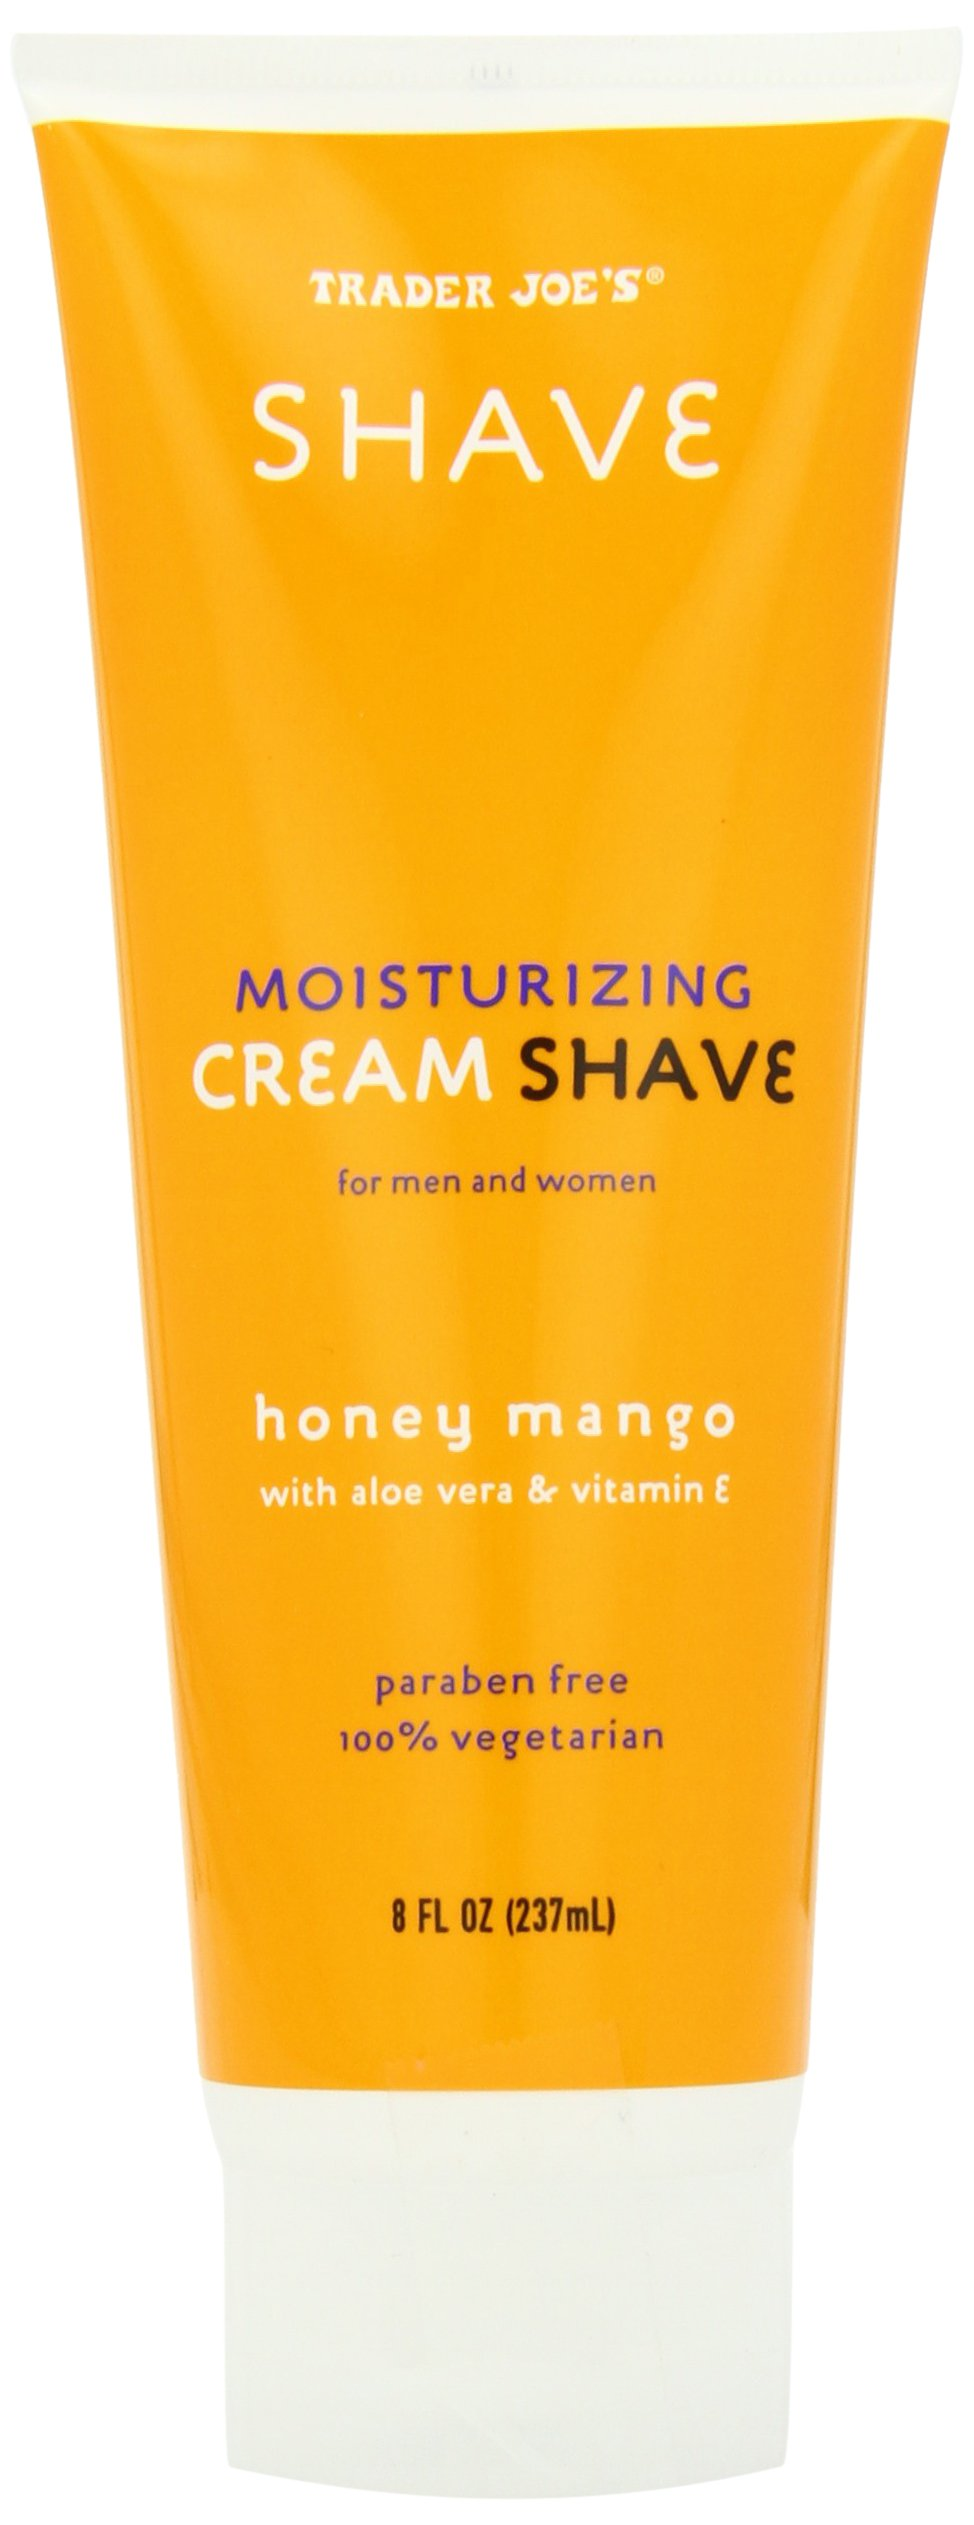 Trader Joe's - Moisturizing Cream Shave Honey Mango